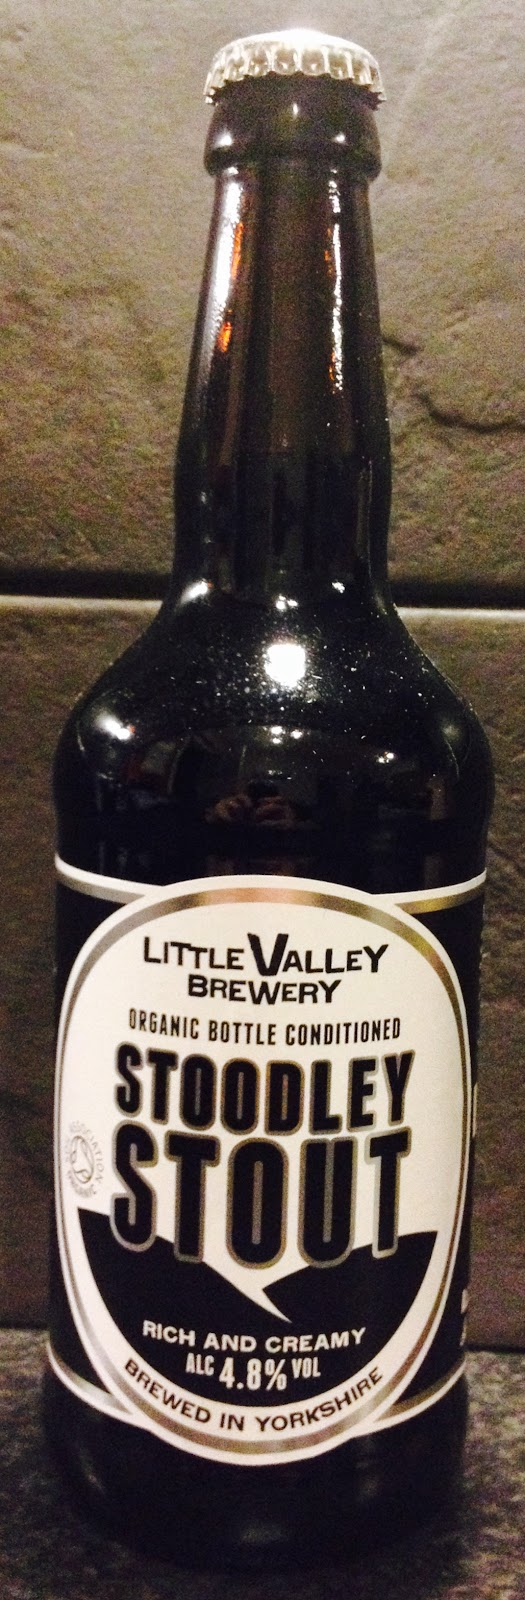 Stoodley Stout (Little Valley Brewery)